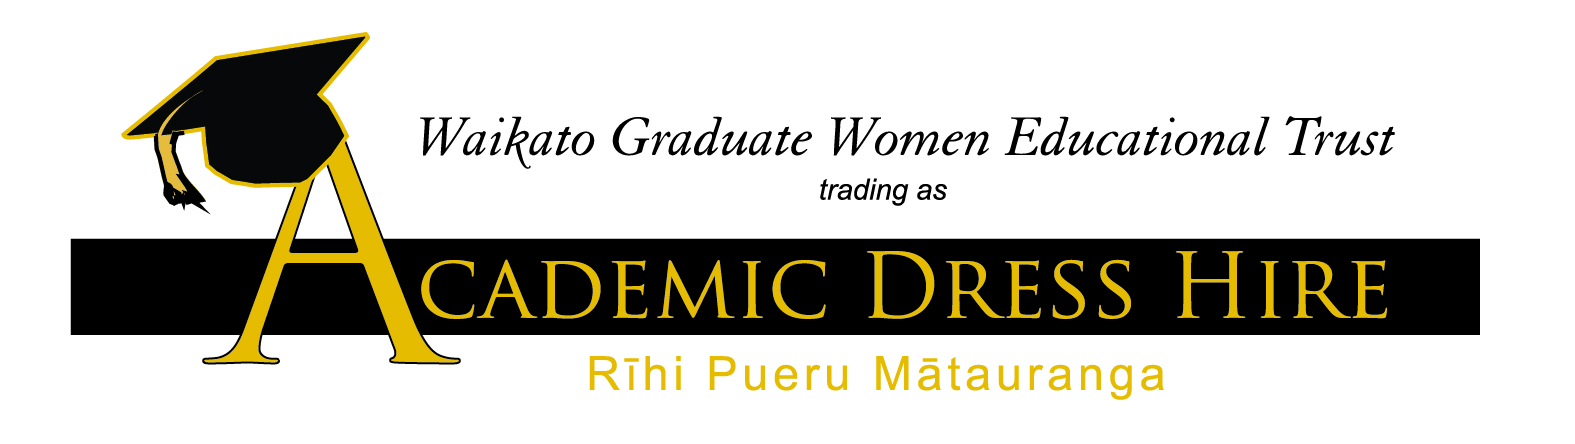 academic dress hire logo-01